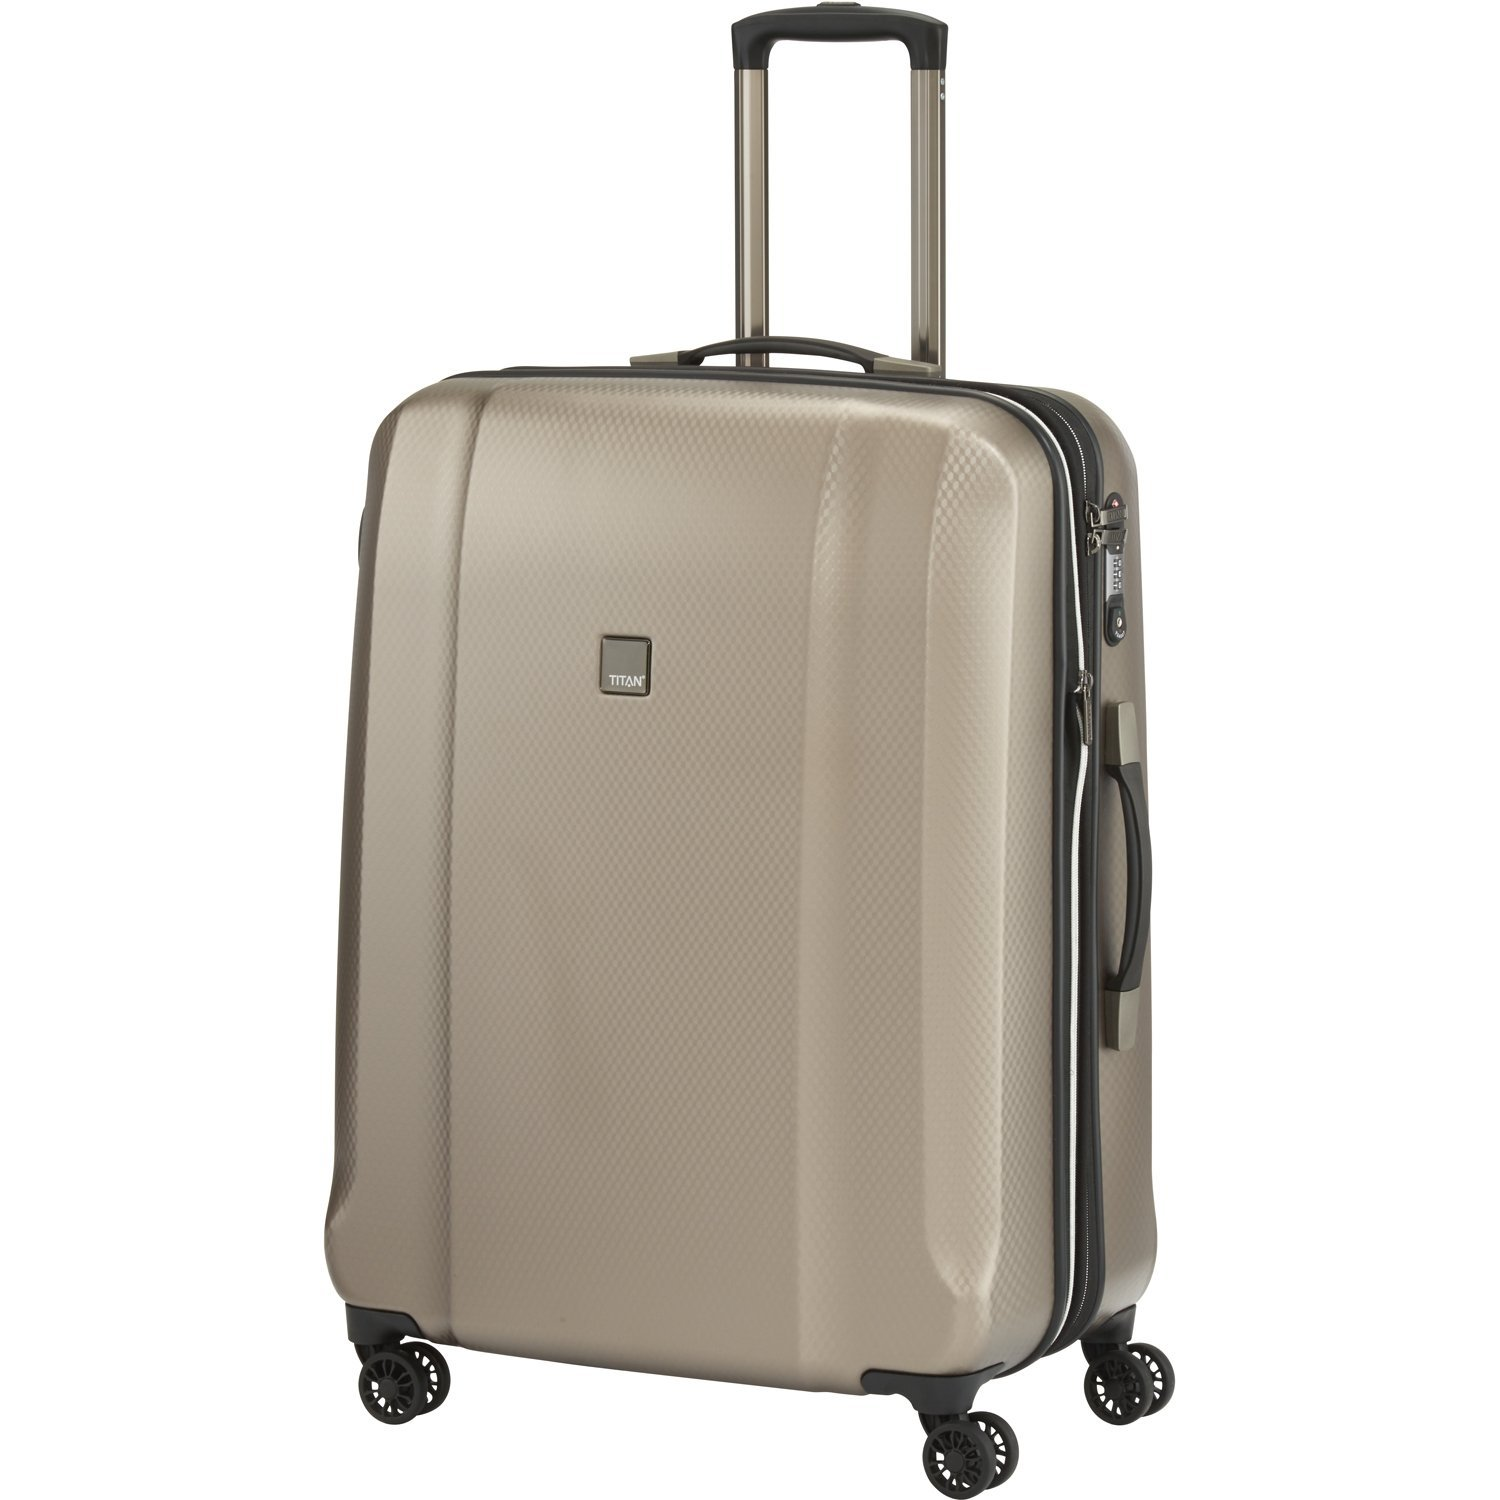 "TITAN Valise trolley ""Xenon Deluxe"" avec 4 roues champagne Koffer, 74 cm, 113 liters, Beige (Champagne)"